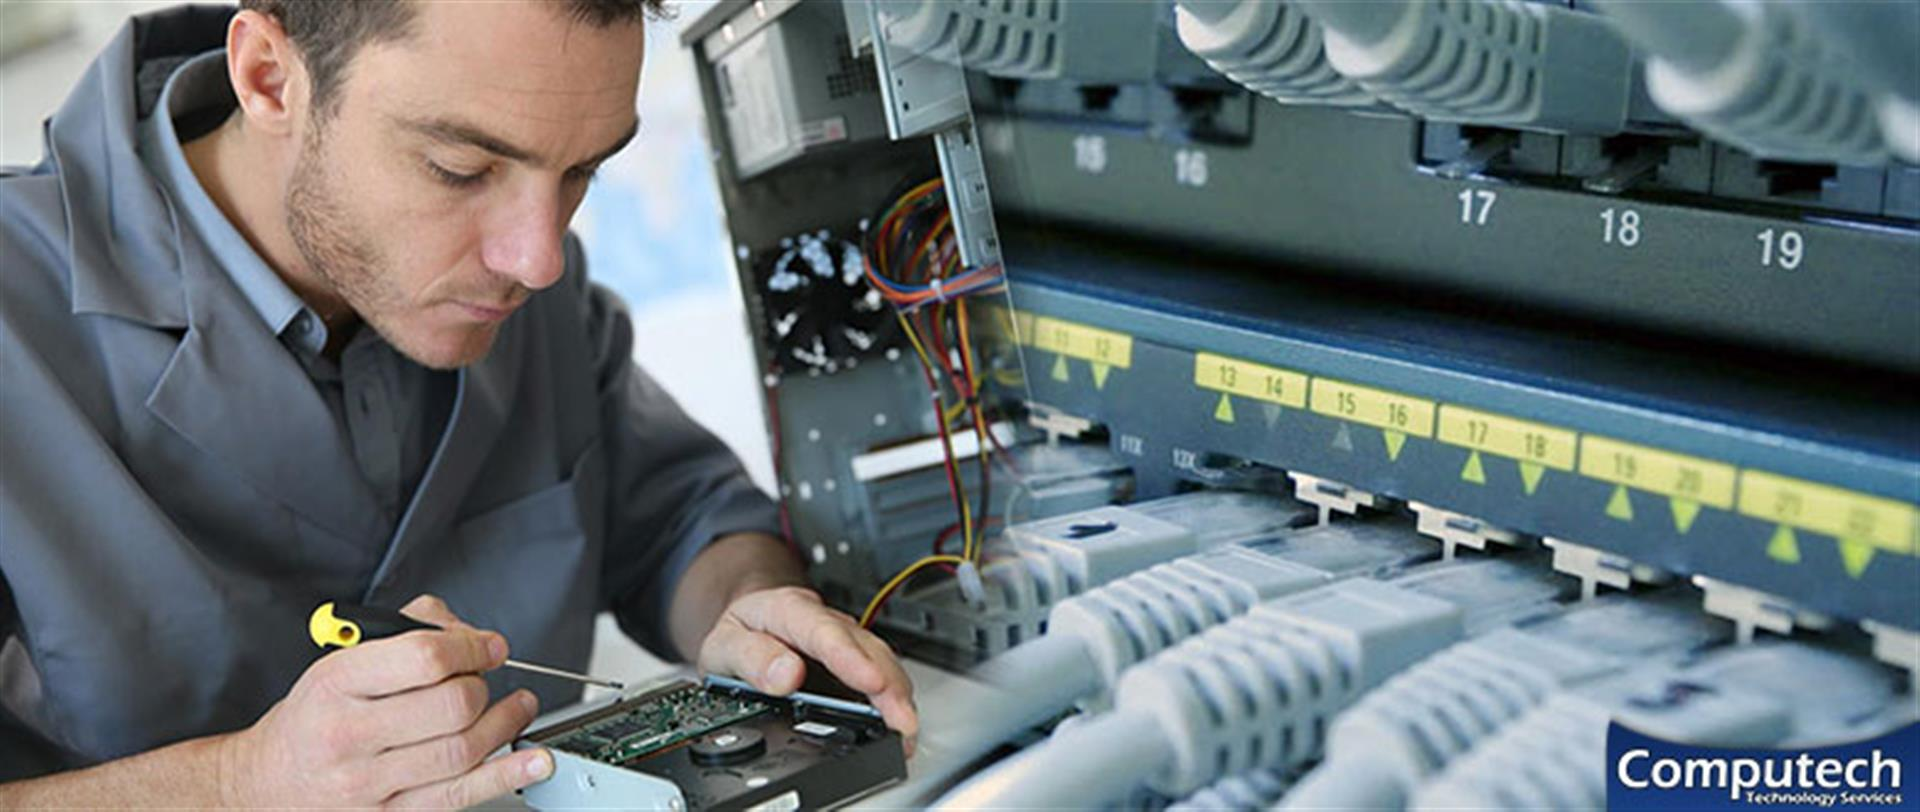 Stockbridge Georgia On Site PC & Printer Repair, Network, Voice & Data Cabling Solutions